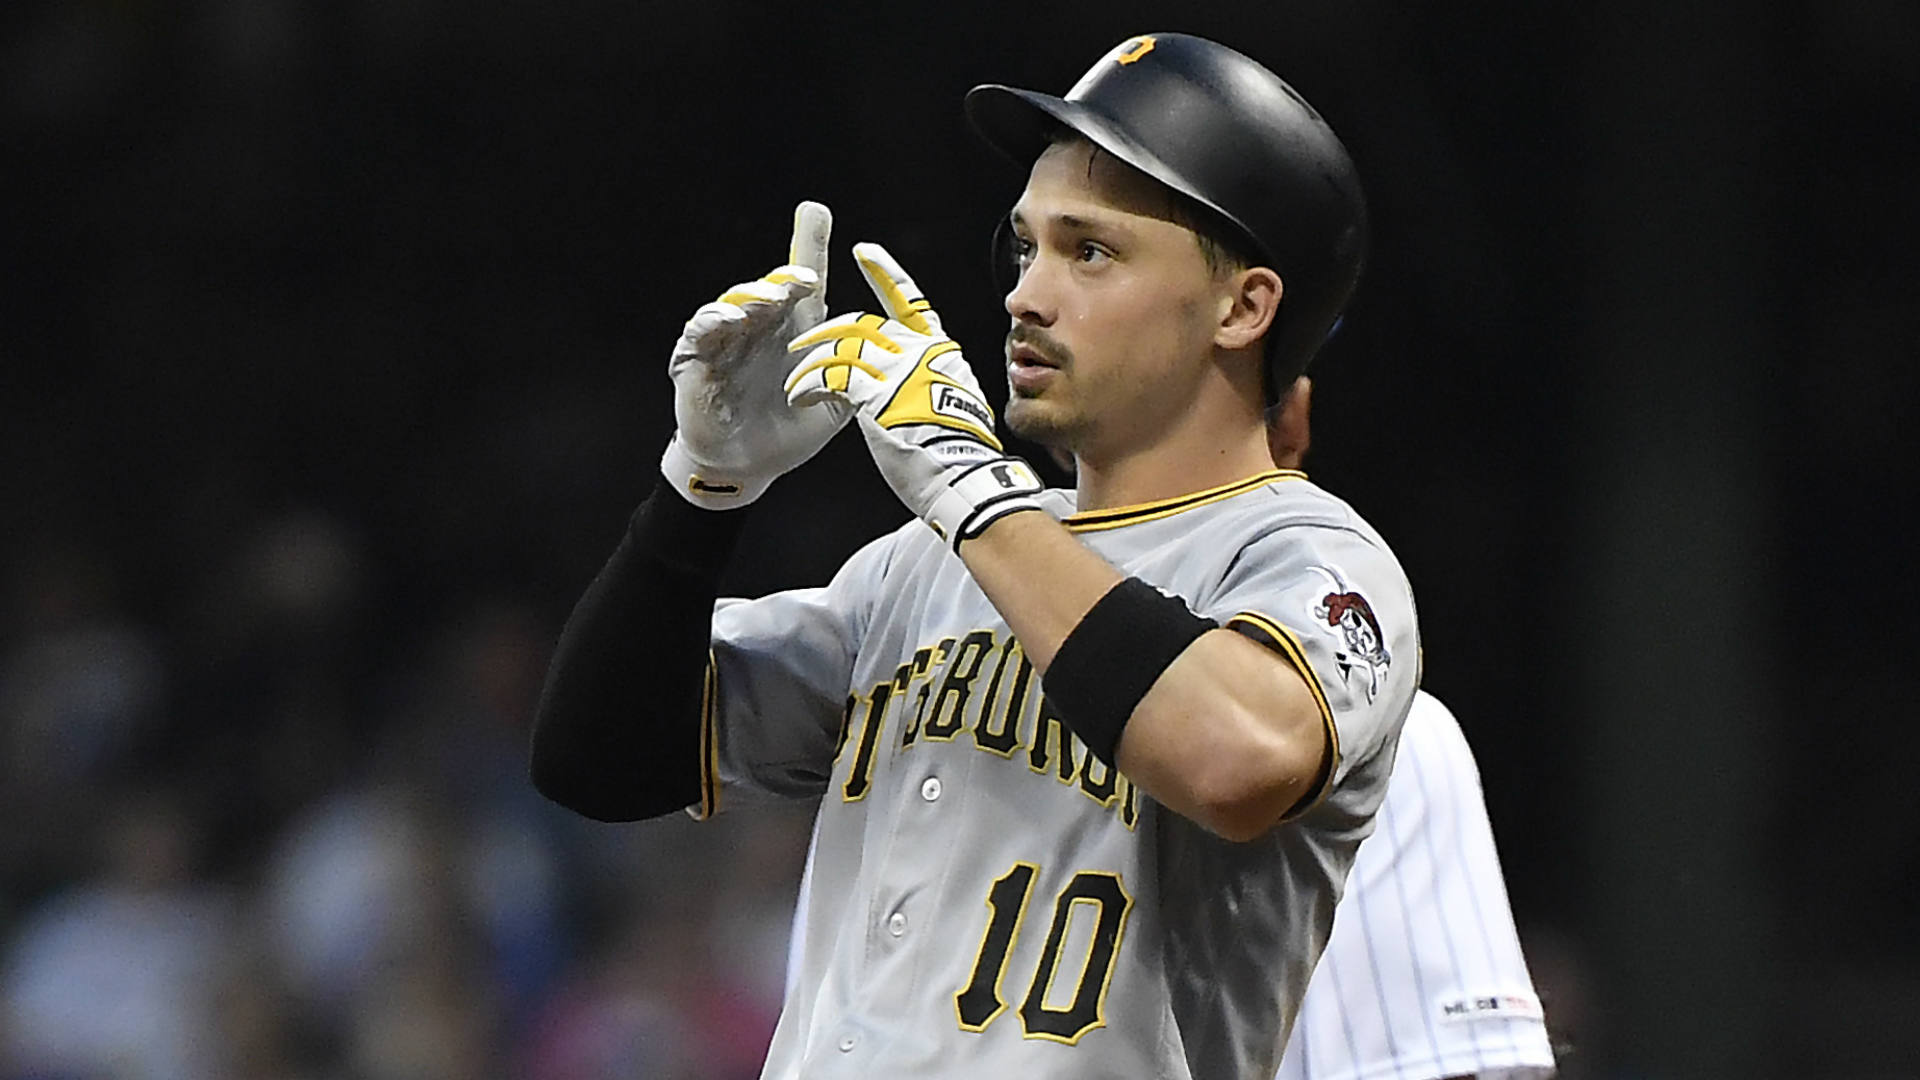 Pirates' Bryan Reynolds is MLB's overlooked rookie standout — and that's probably not changing